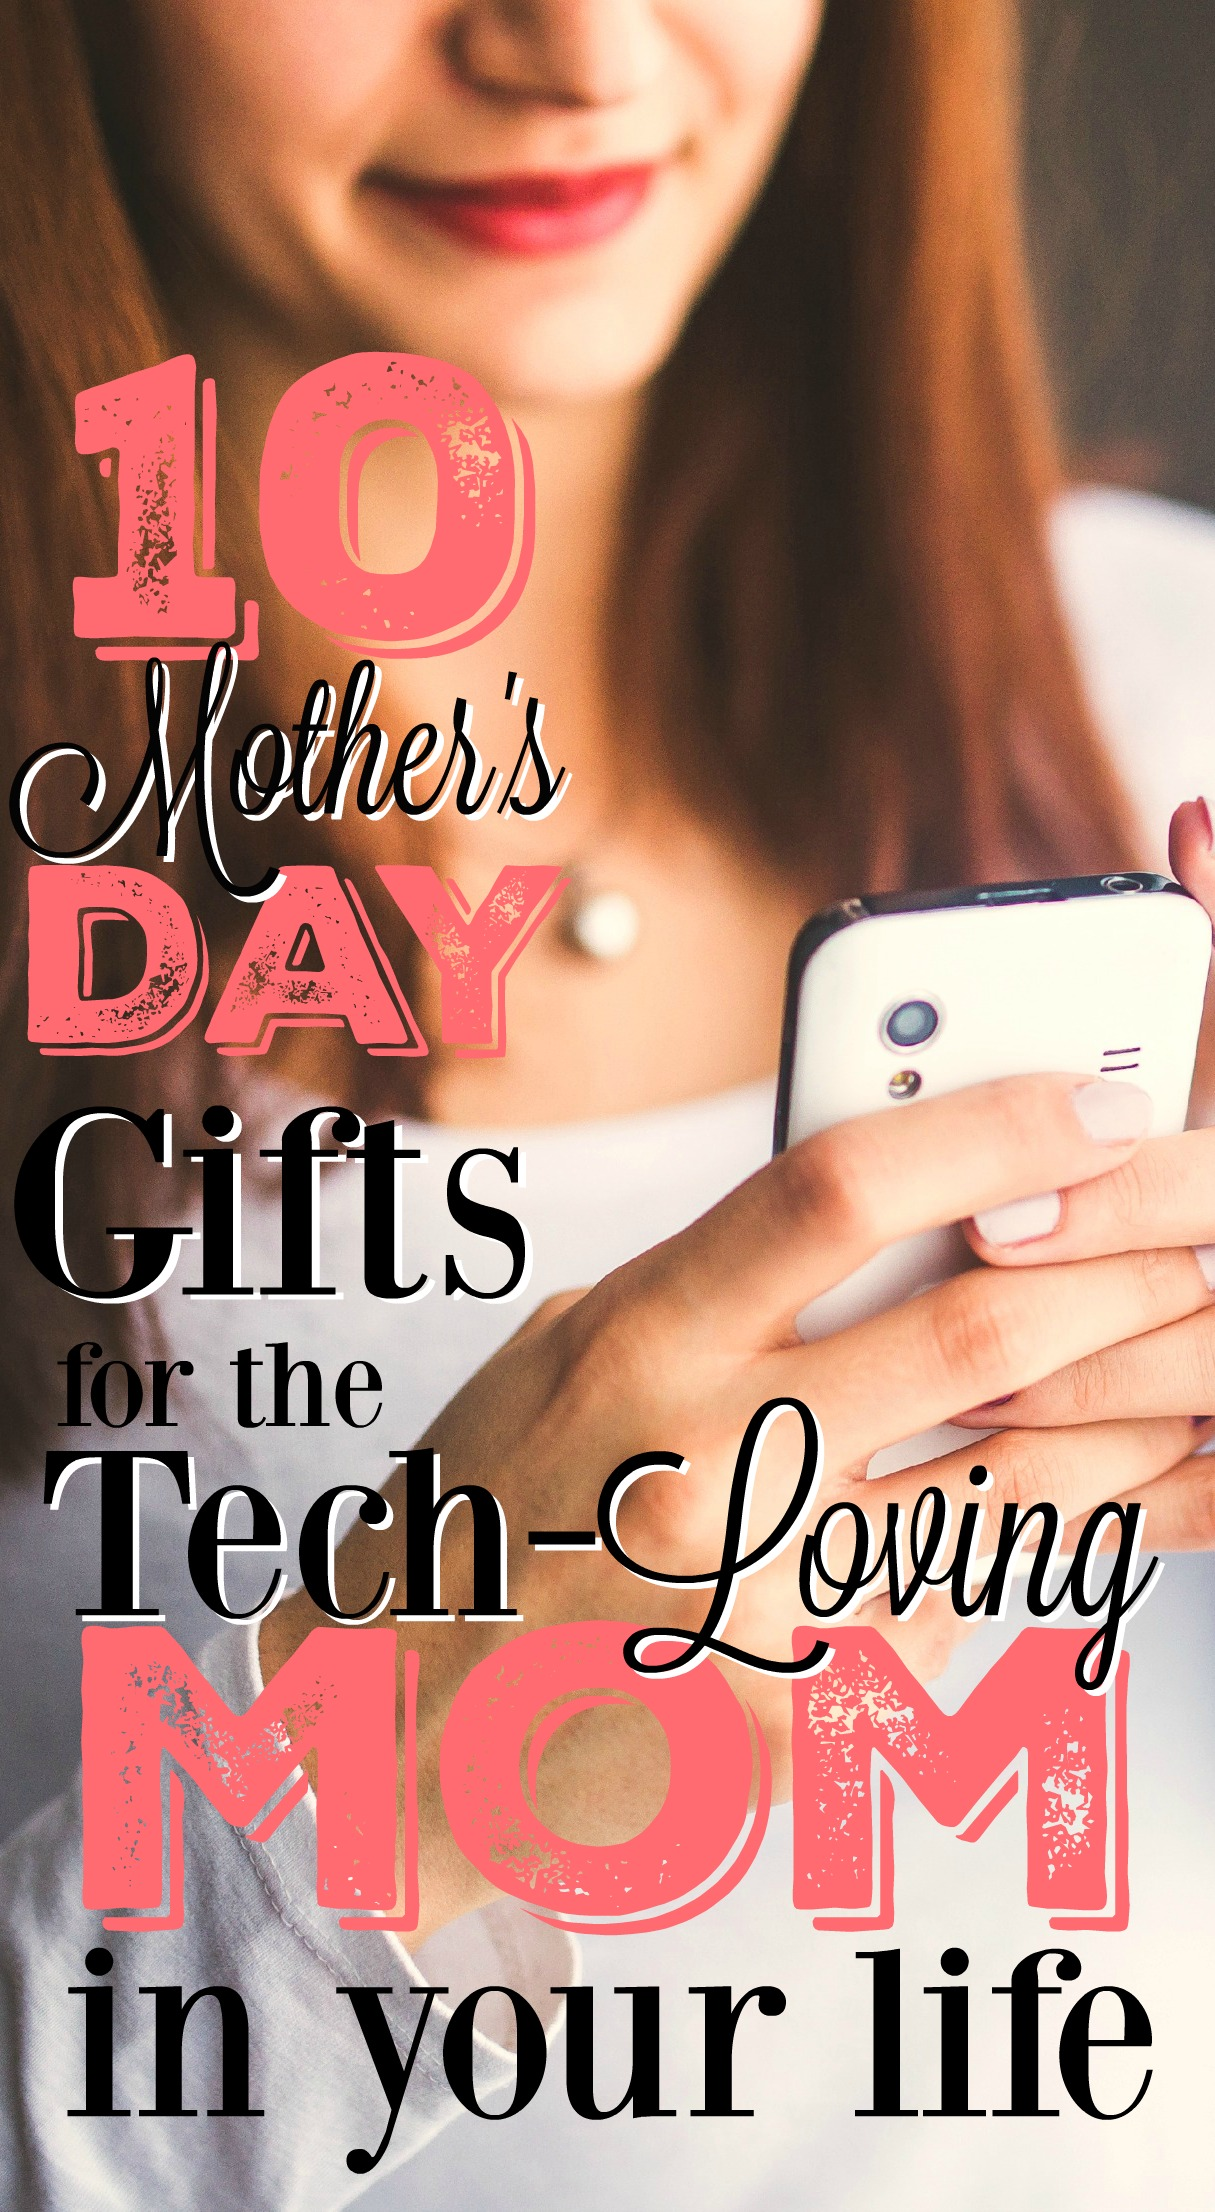 If you're looking for technology-based gift ideas for Mother's Day, look no further! This list will help you find the perfect tech gift for Mom.